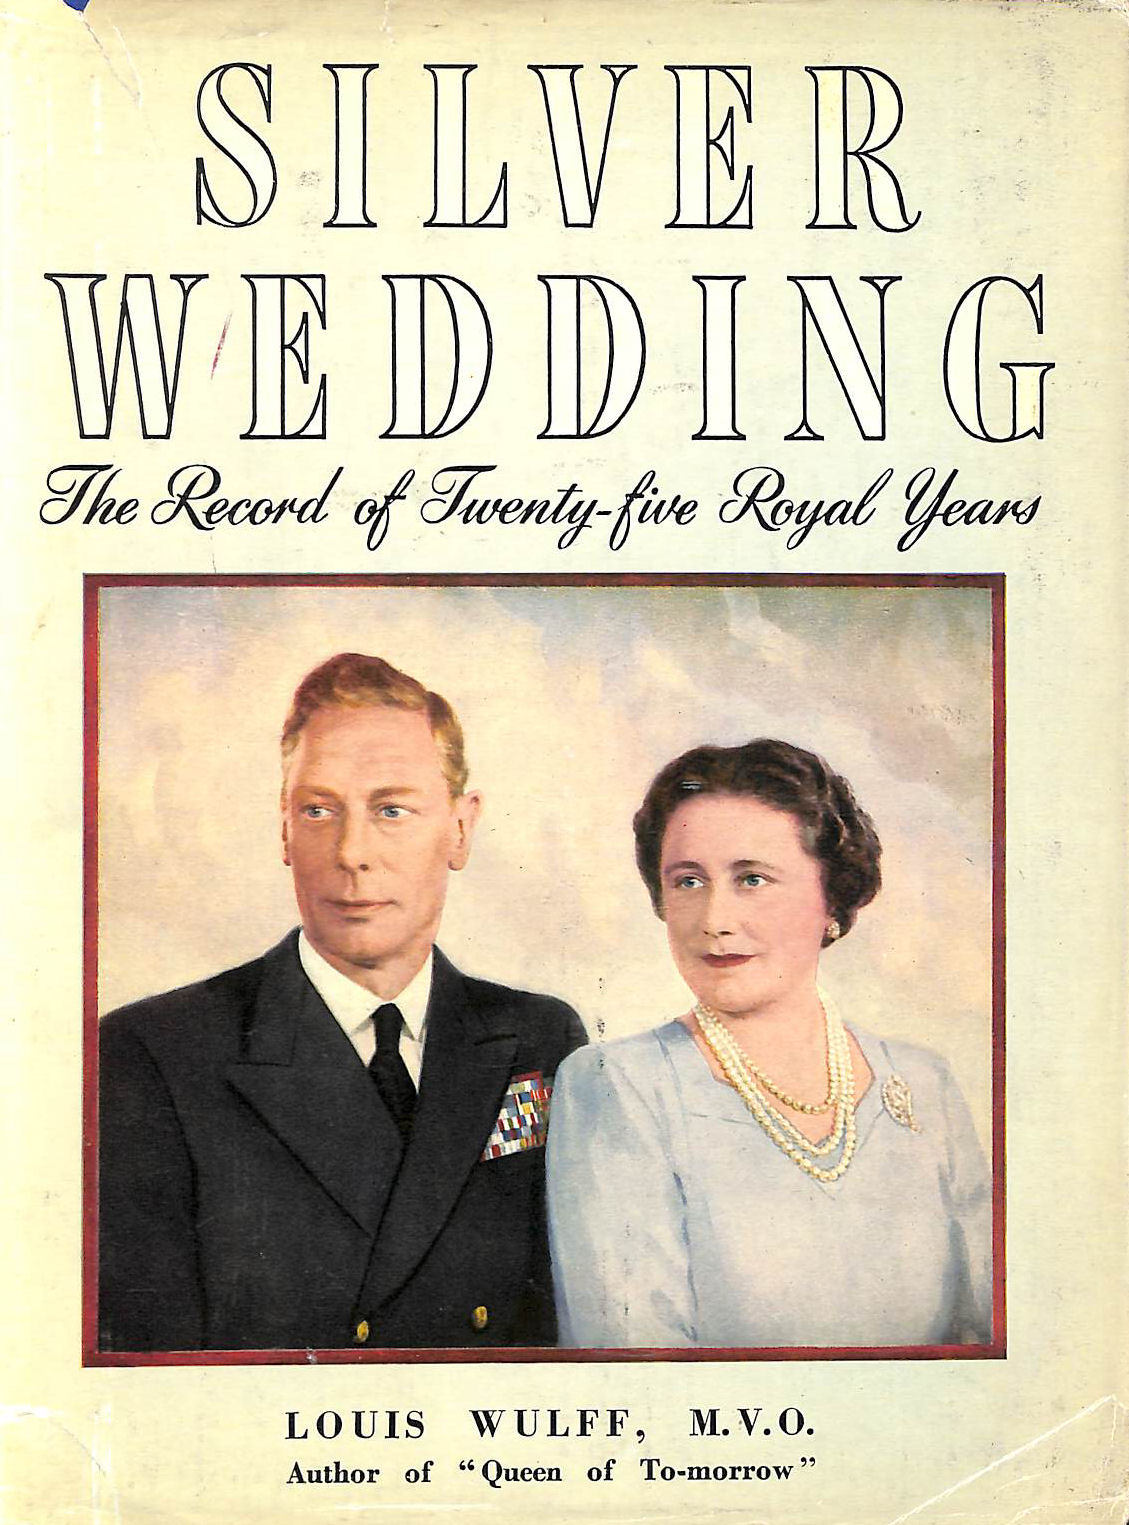 Image for SILVER WEDDING OF KING GEORGE VI AND QUEEN ELIZABETH. THE RECORD OF TWENTY-FIVE ROYAL YEARS. WITH ILLUSTRATIONS, INCLUDING PORTRAITS